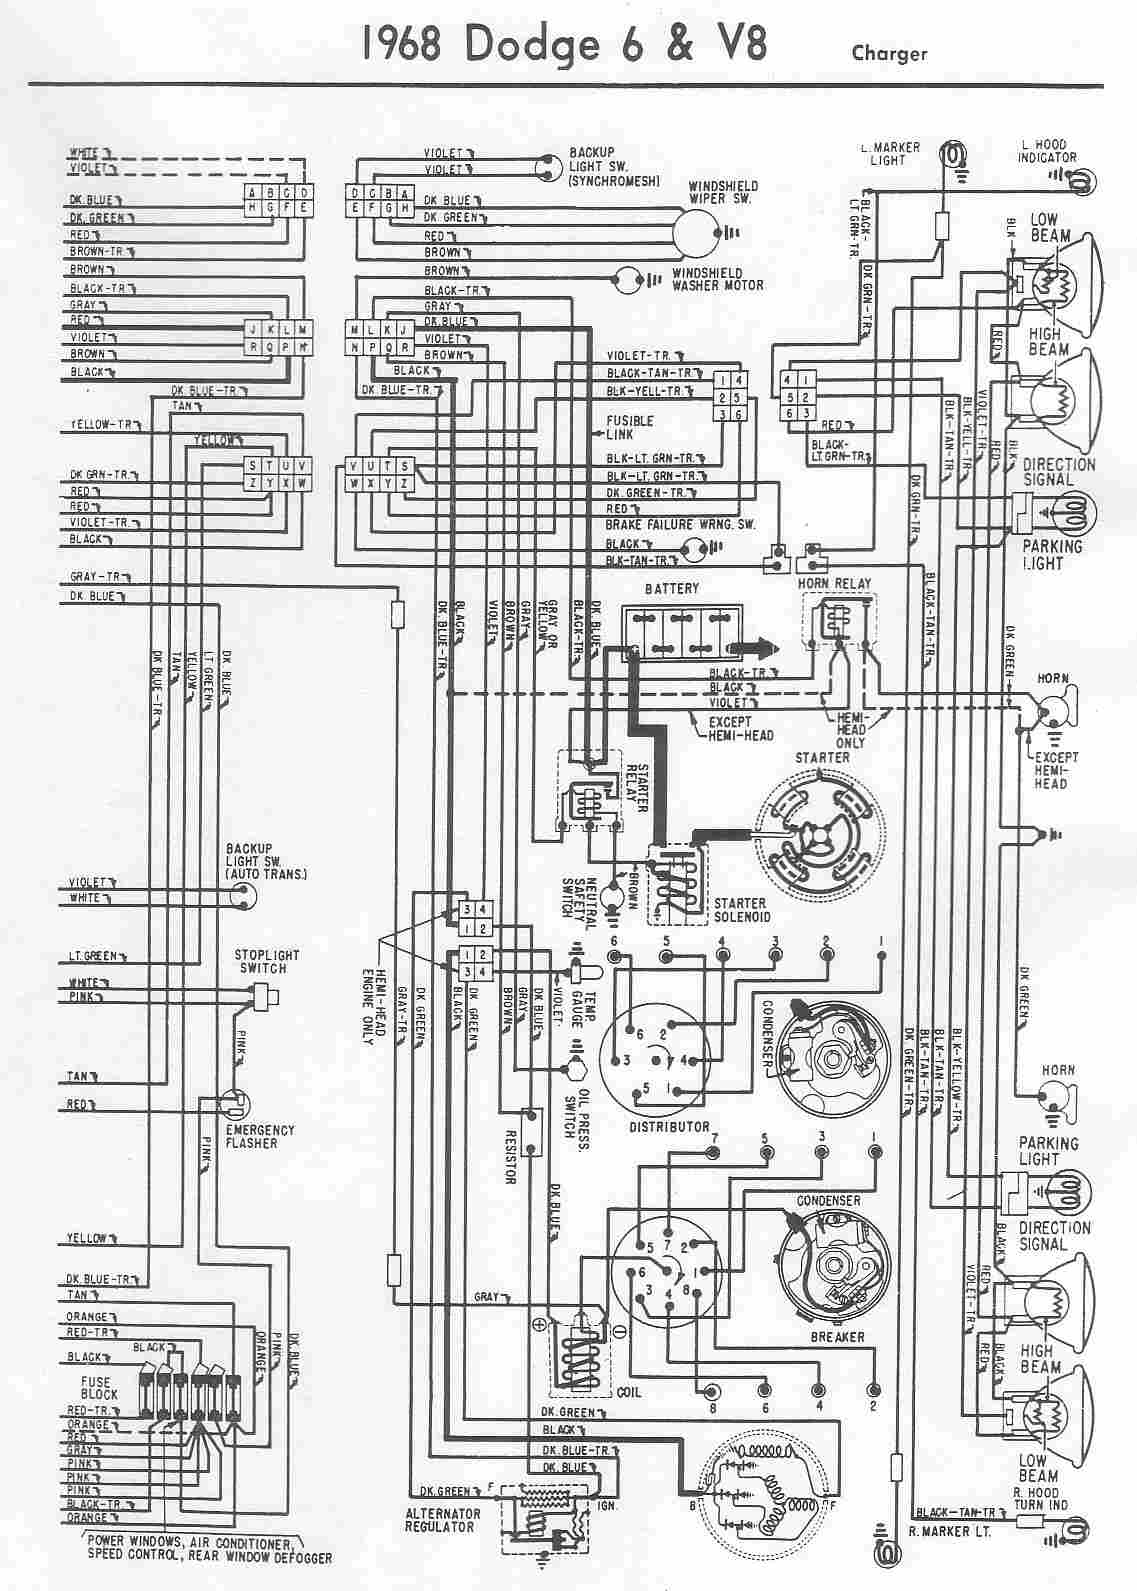 1970 dodge charger wiring diagram likewise 1969 dodge charger tail 2010 dodge charger fuse locations 1969 dodge charger fuse box diagram [ 1137 x 1591 Pixel ]